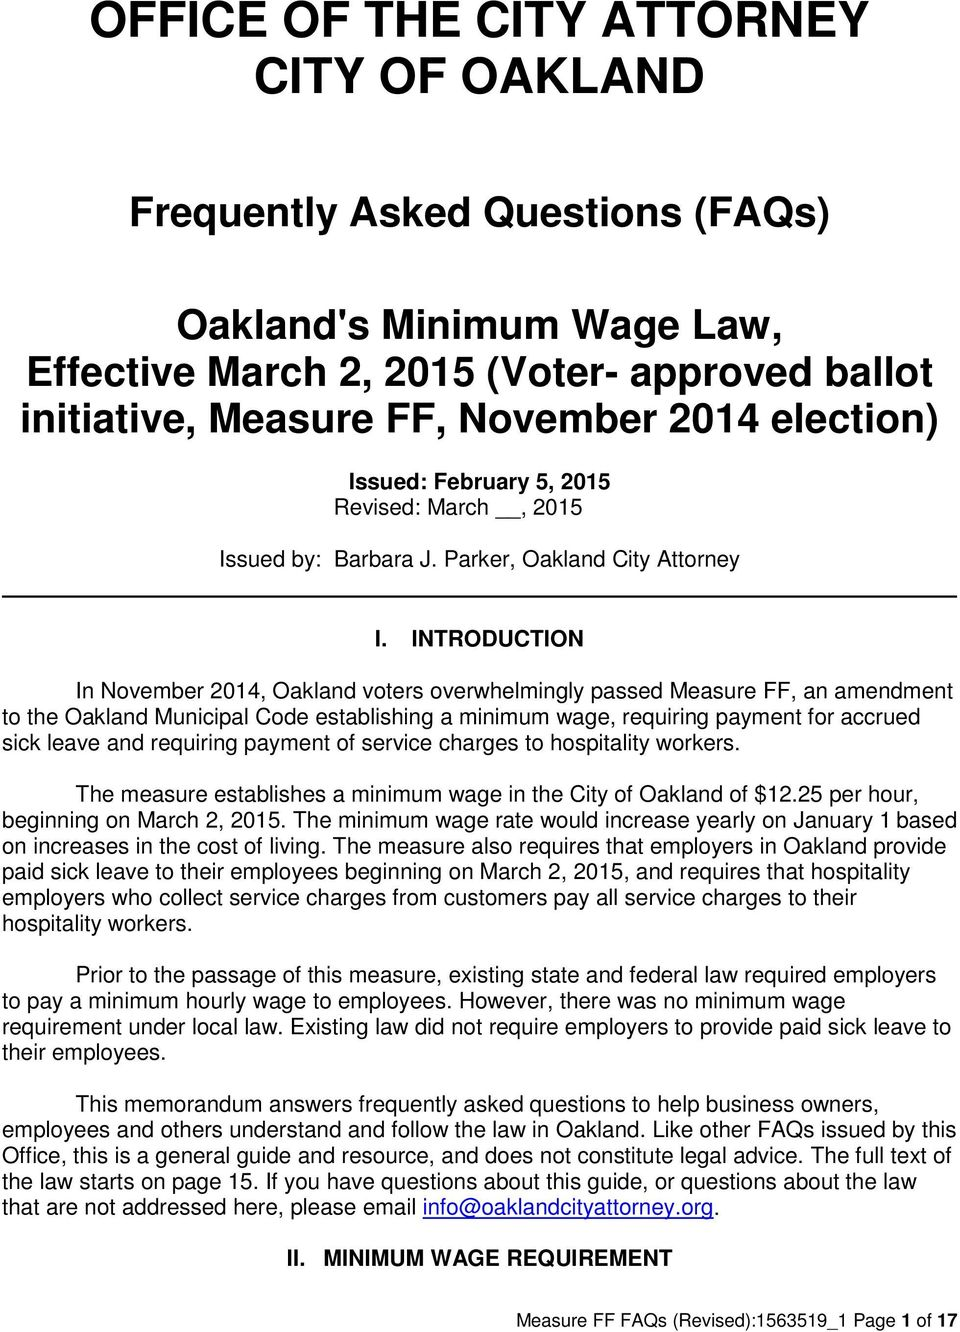 INTRODUCTION In November 2014, Oakland voters overwhelmingly passed Measure FF, an amendment to the Oakland Municipal Code establishing a minimum wage, requiring payment for accrued sick leave and